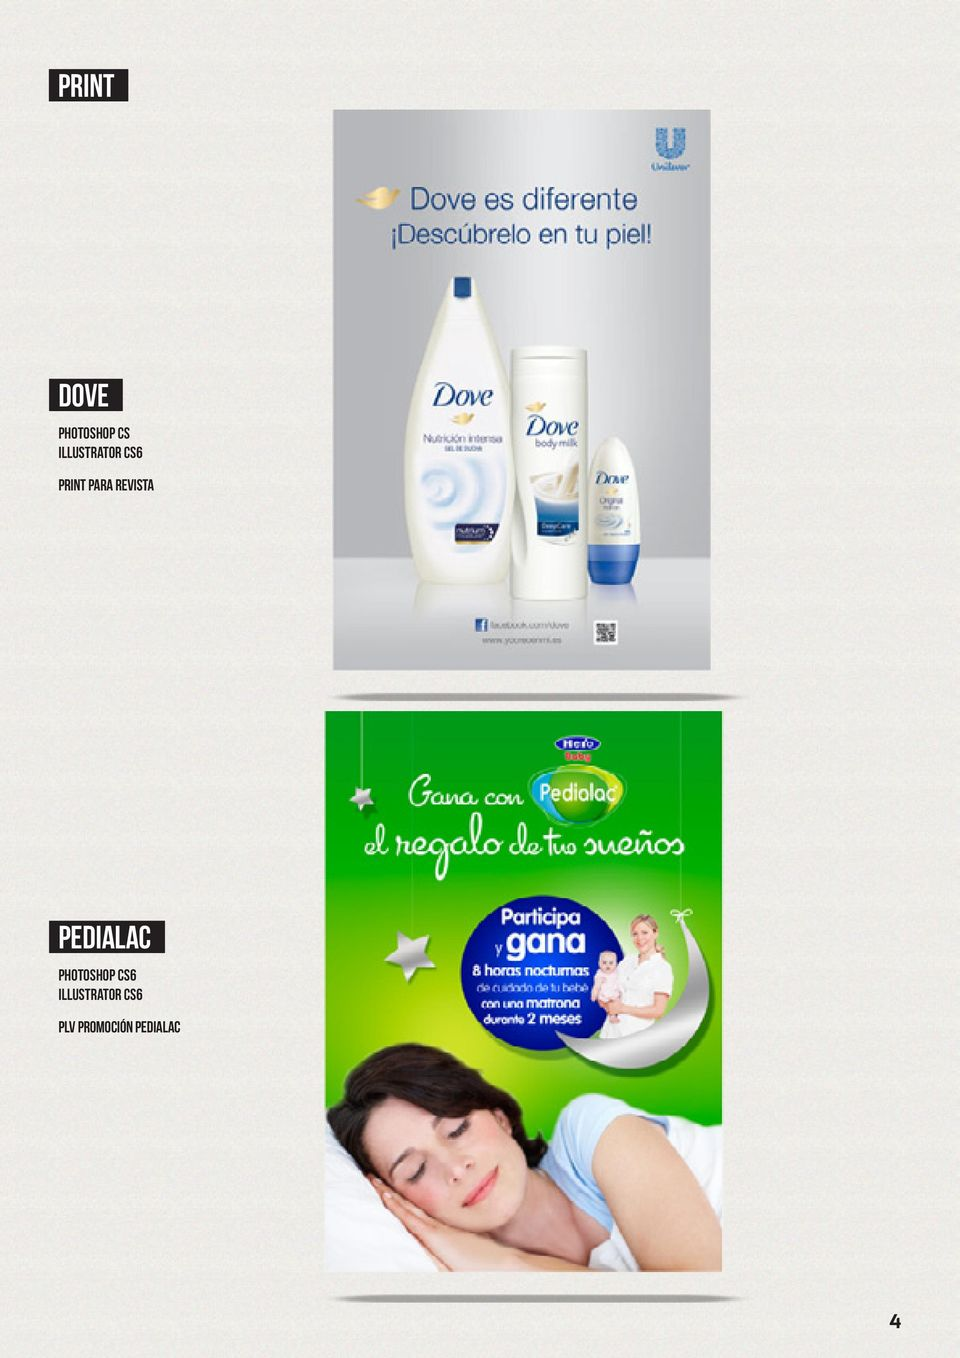 revista pedialac PHOTOSHOP CS6